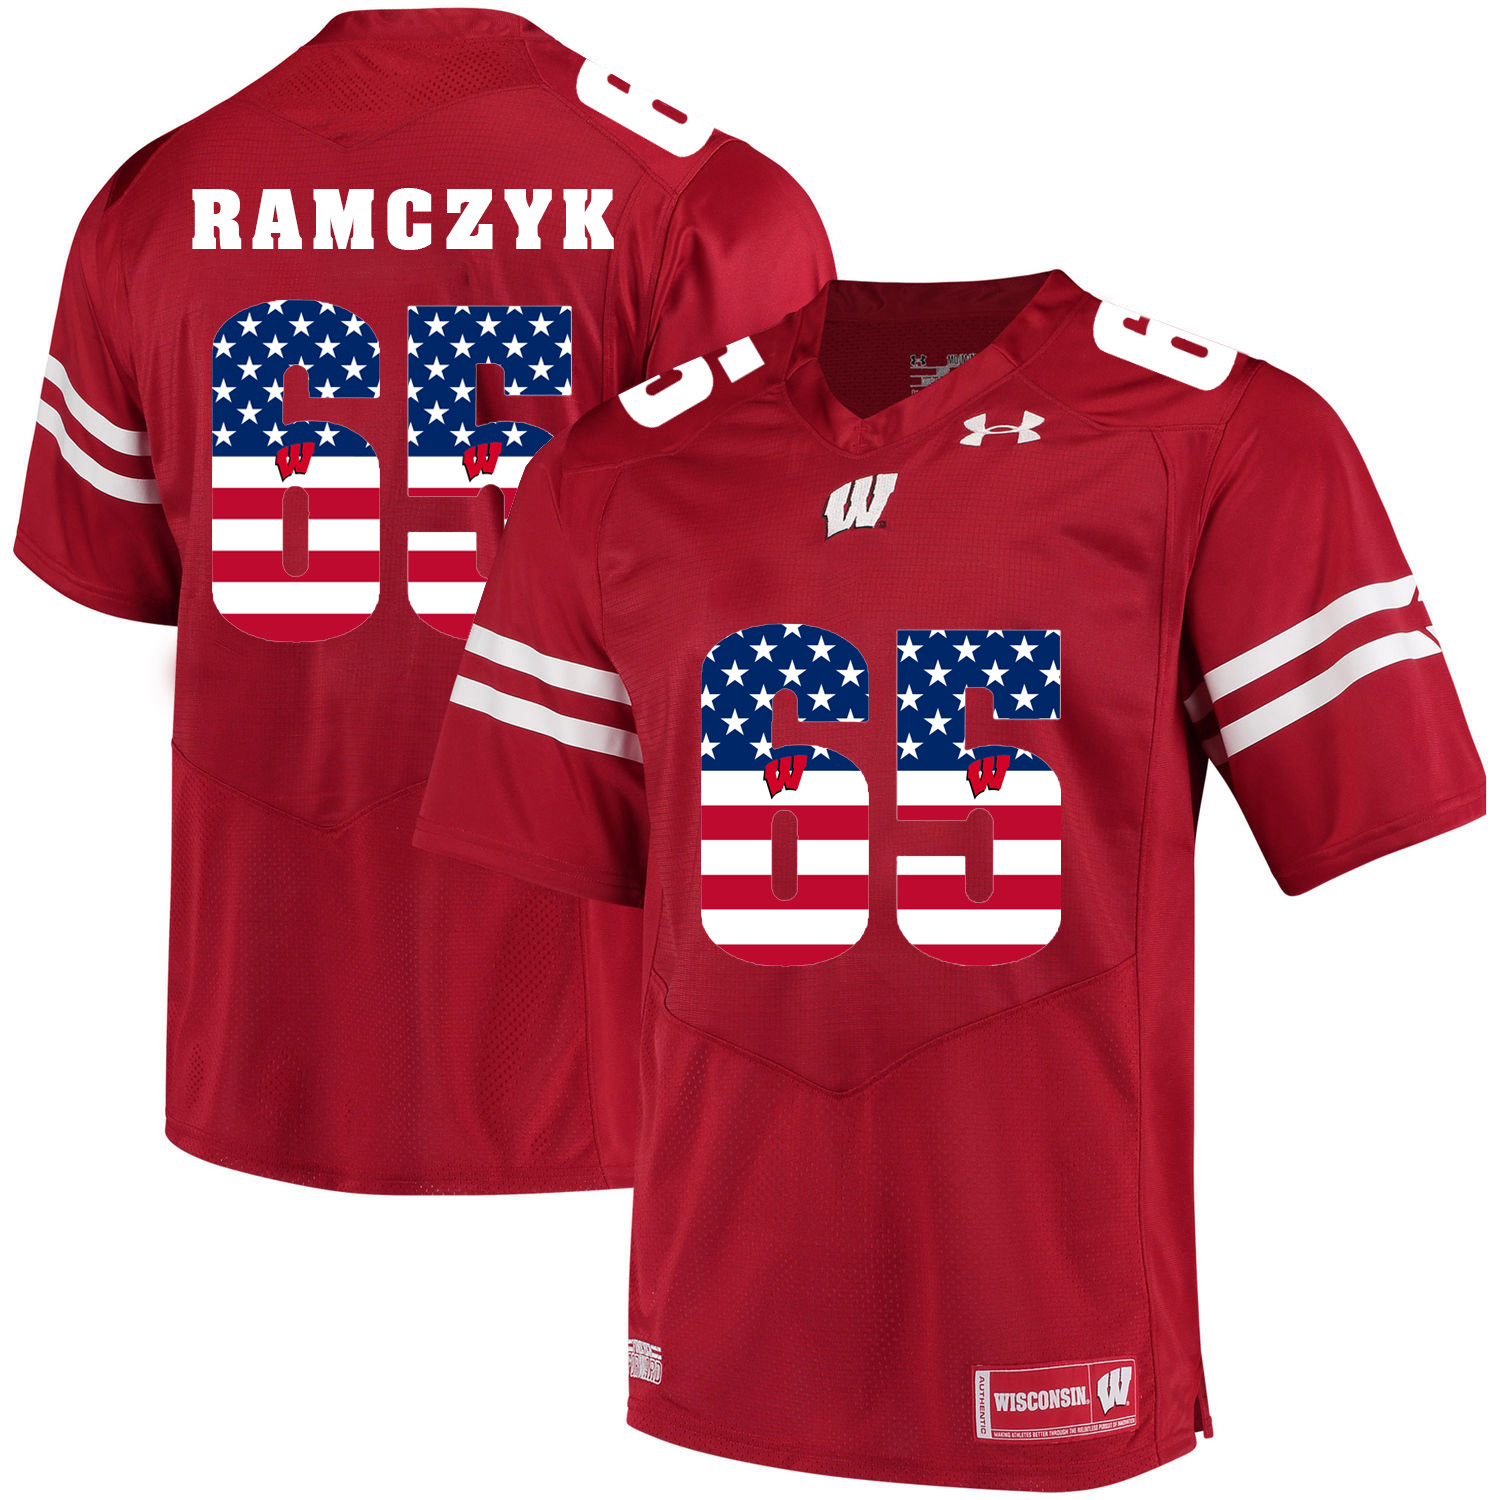 Wisconsin Badgers 65 Ryan Ramczyk Red USA Flag College Football Jersey